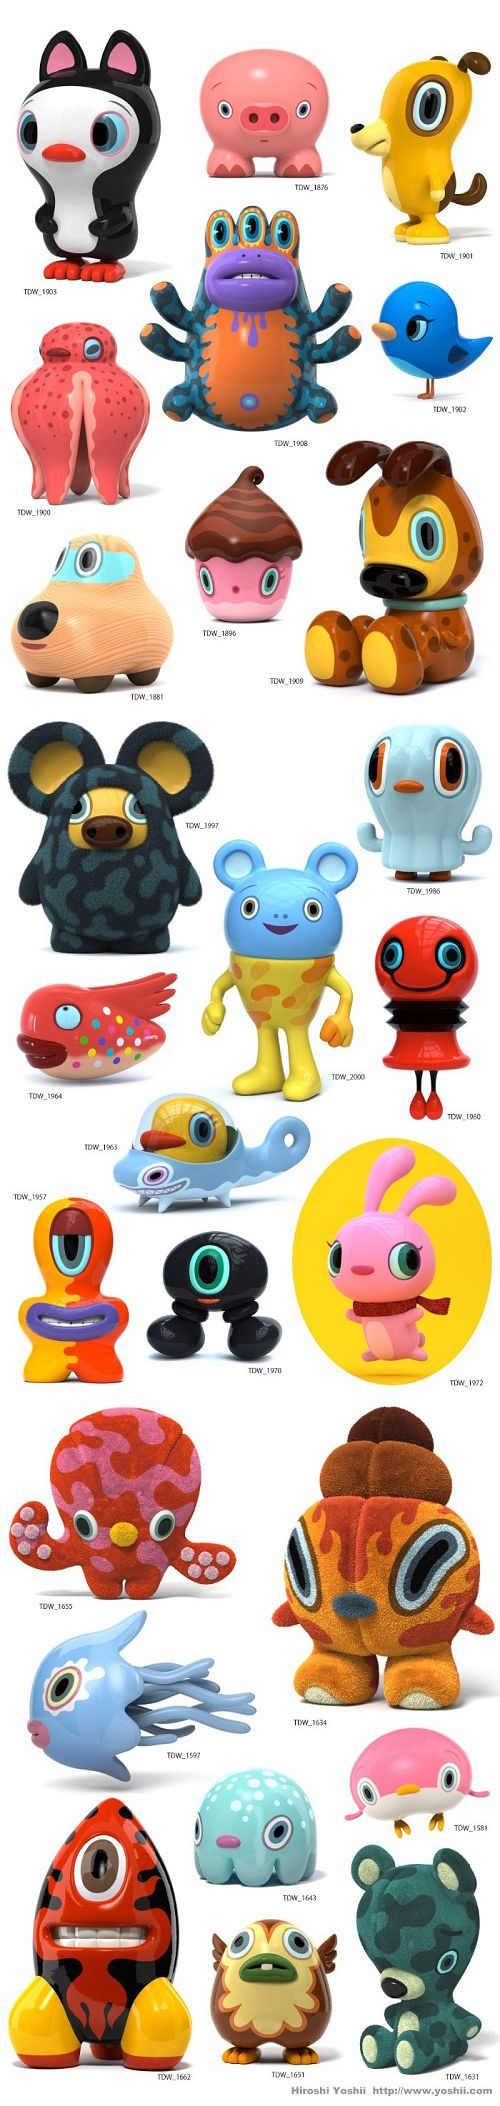 Kawaii toys collection